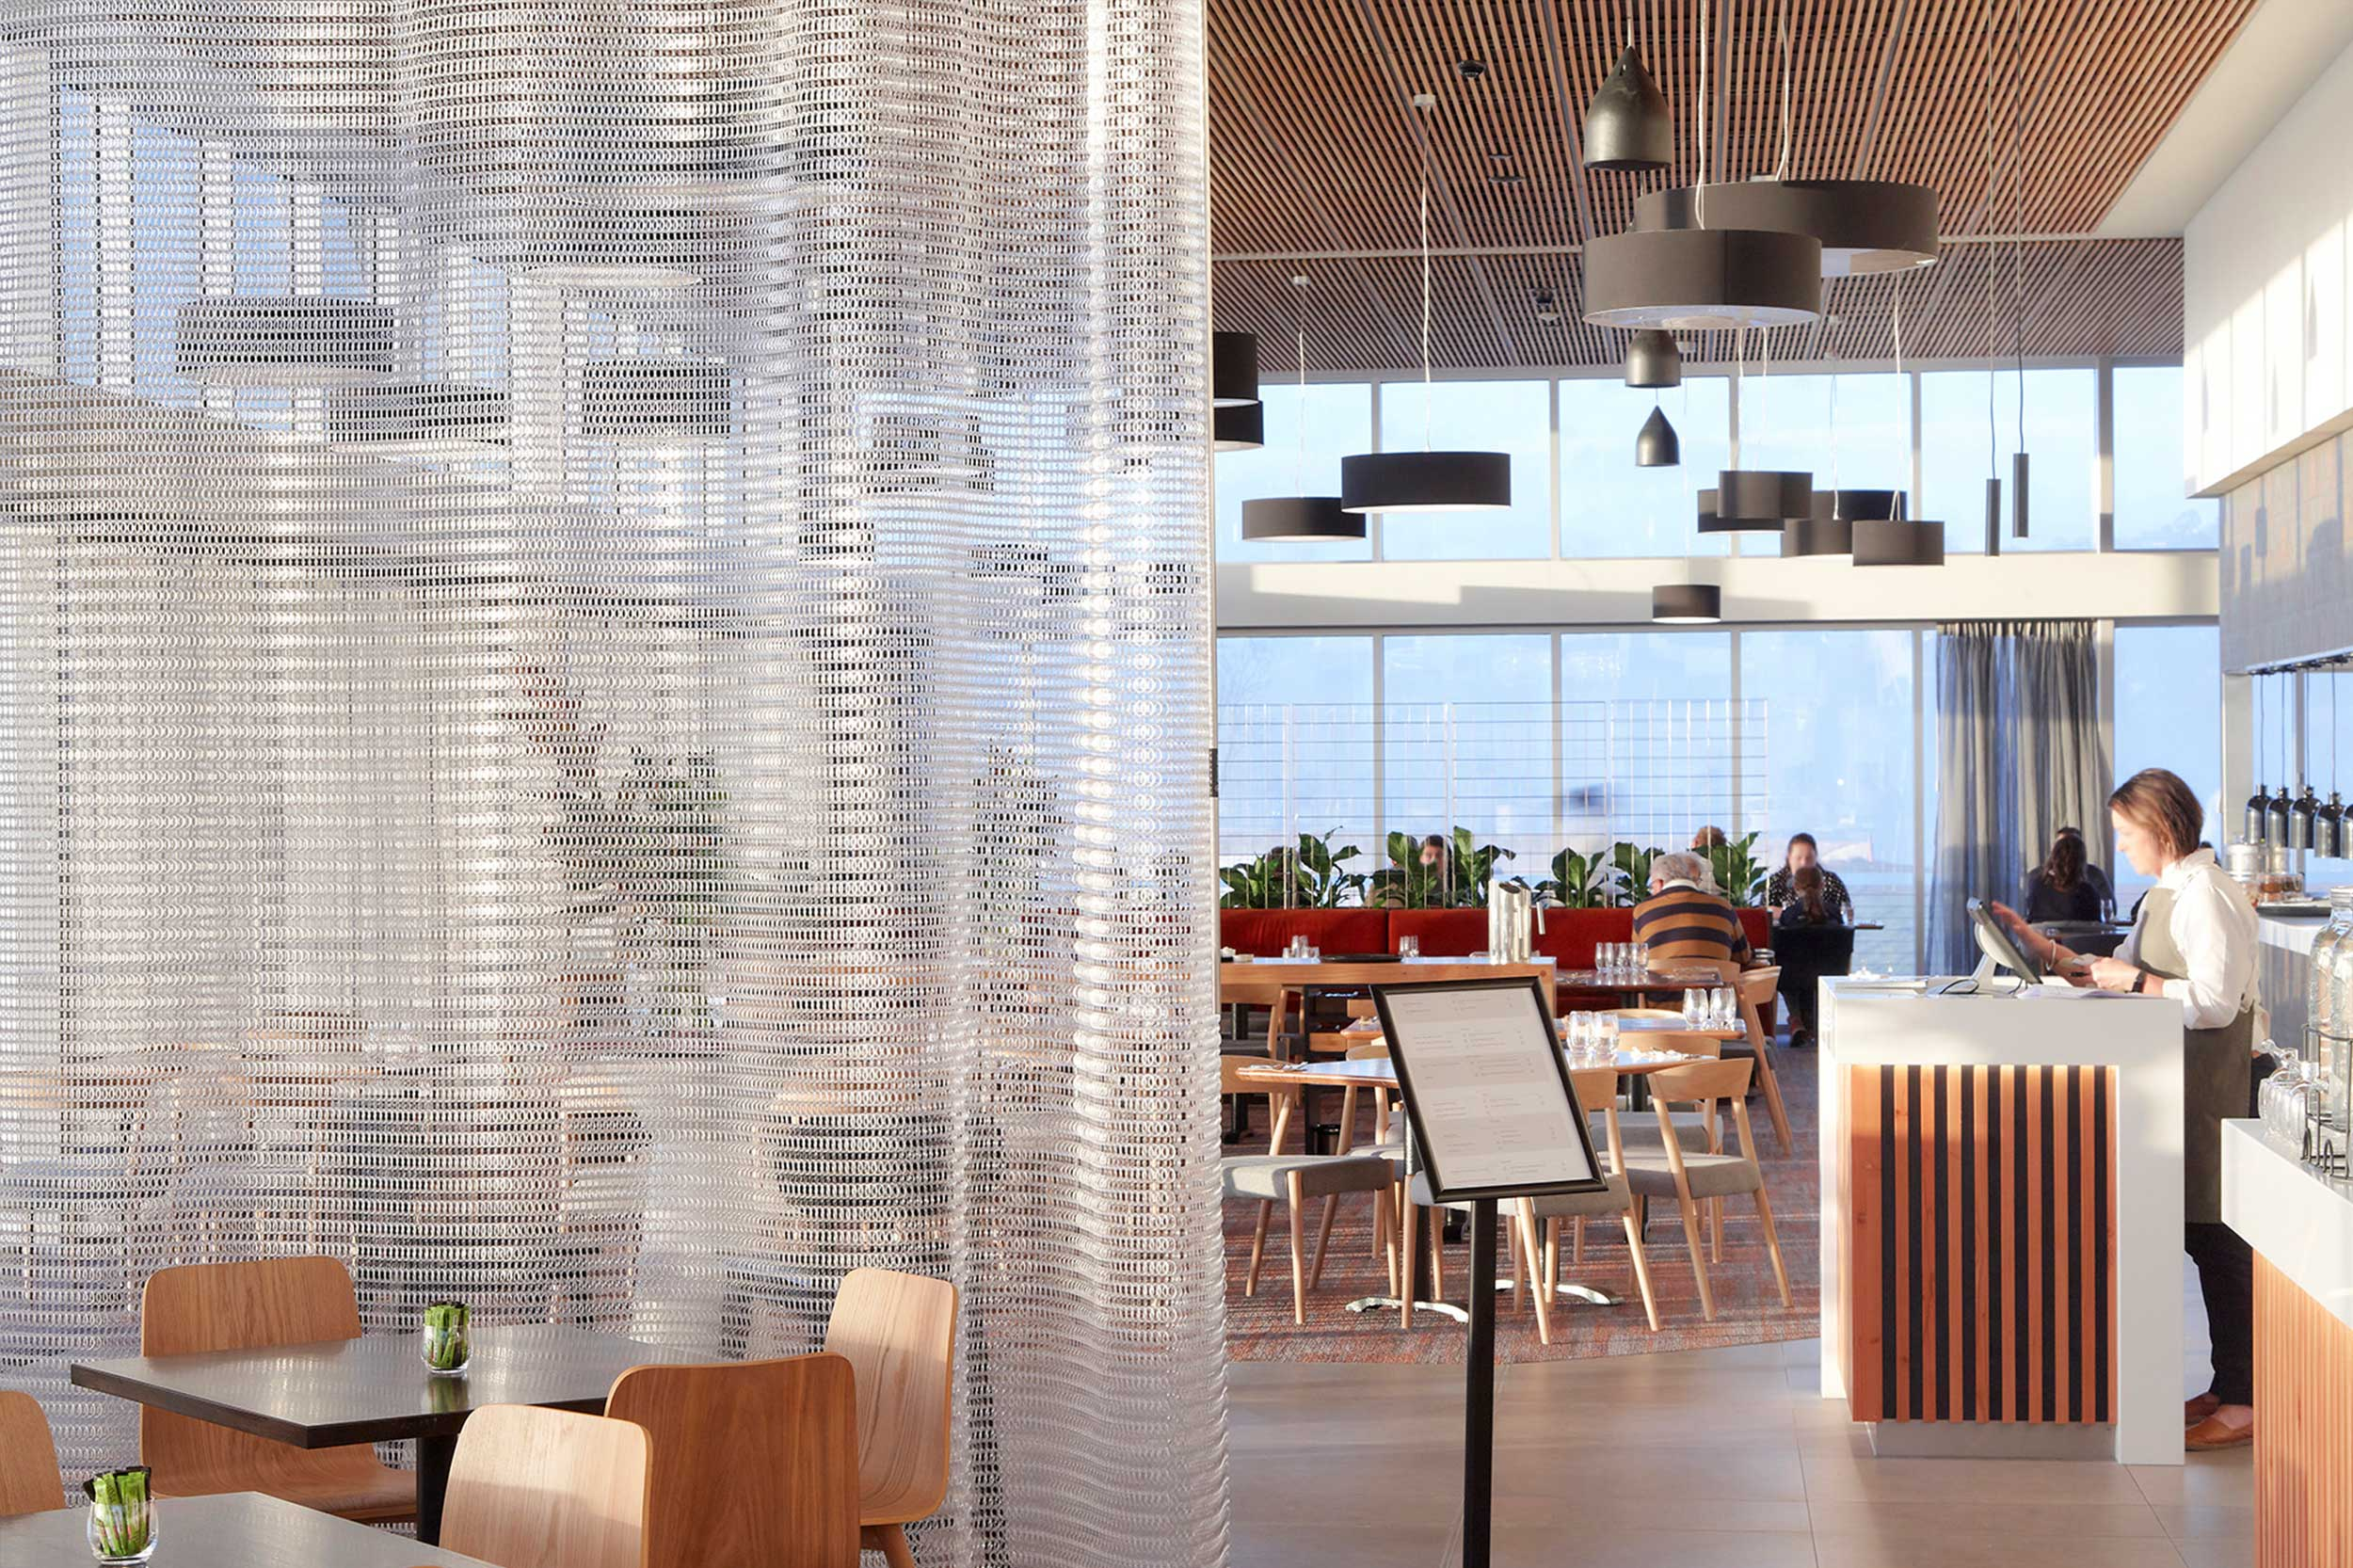 Folding Screens   Kaynemaile folding screens can be used to divide spaces temporarily then retracted when not needed. They are ideal for creating smaller, more intimate spaces within big open plan areas. A locking system can be added depending on your requirements.